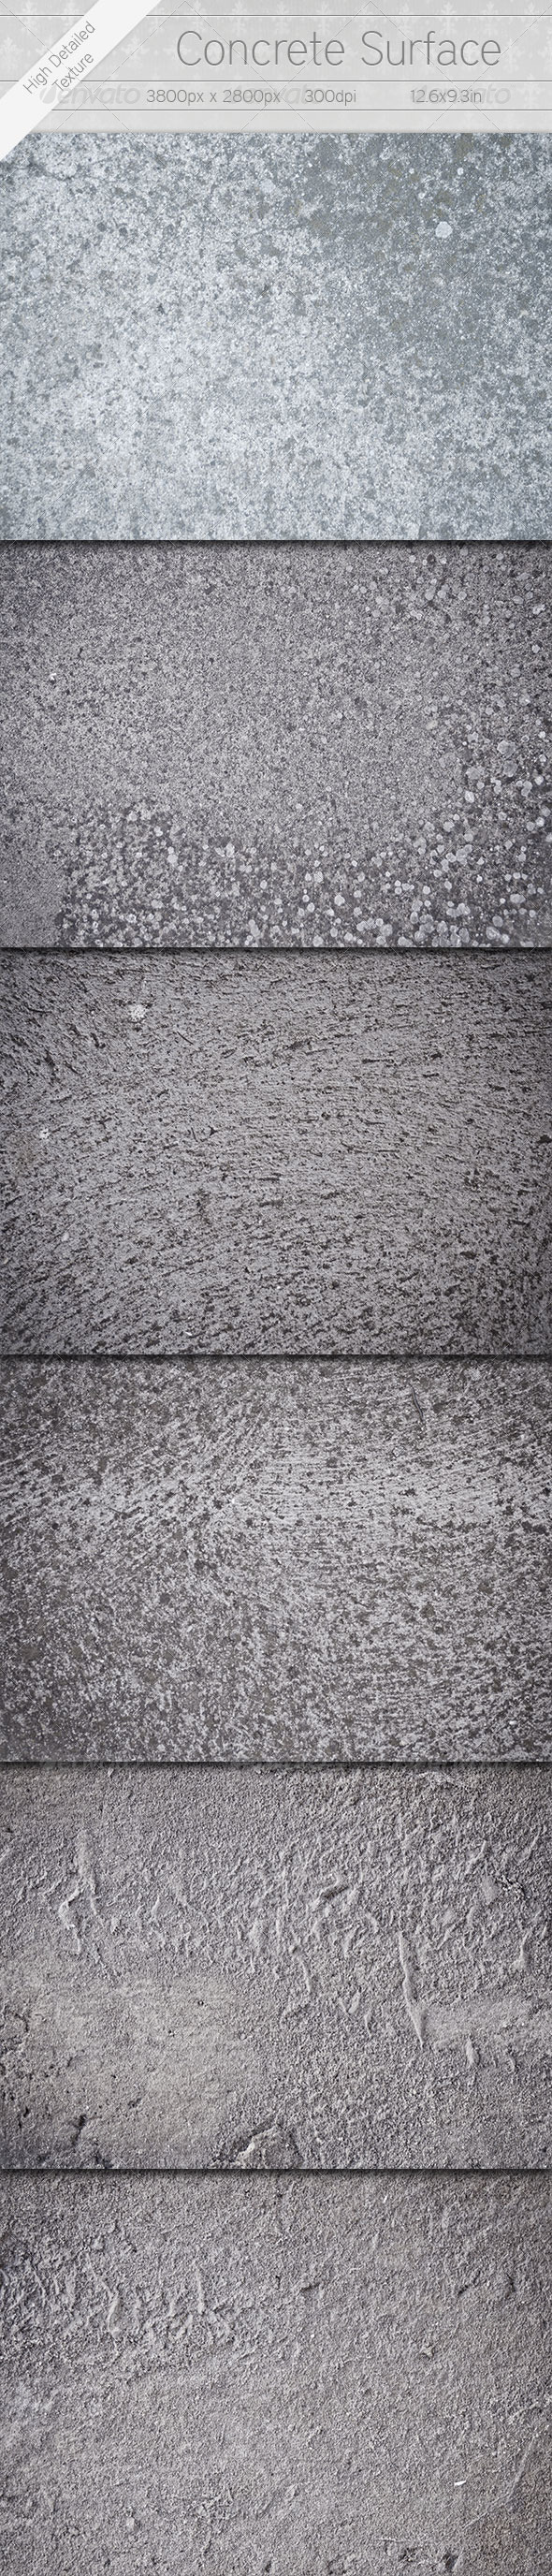 Concrete Surfaces - Photoshop Add-ons